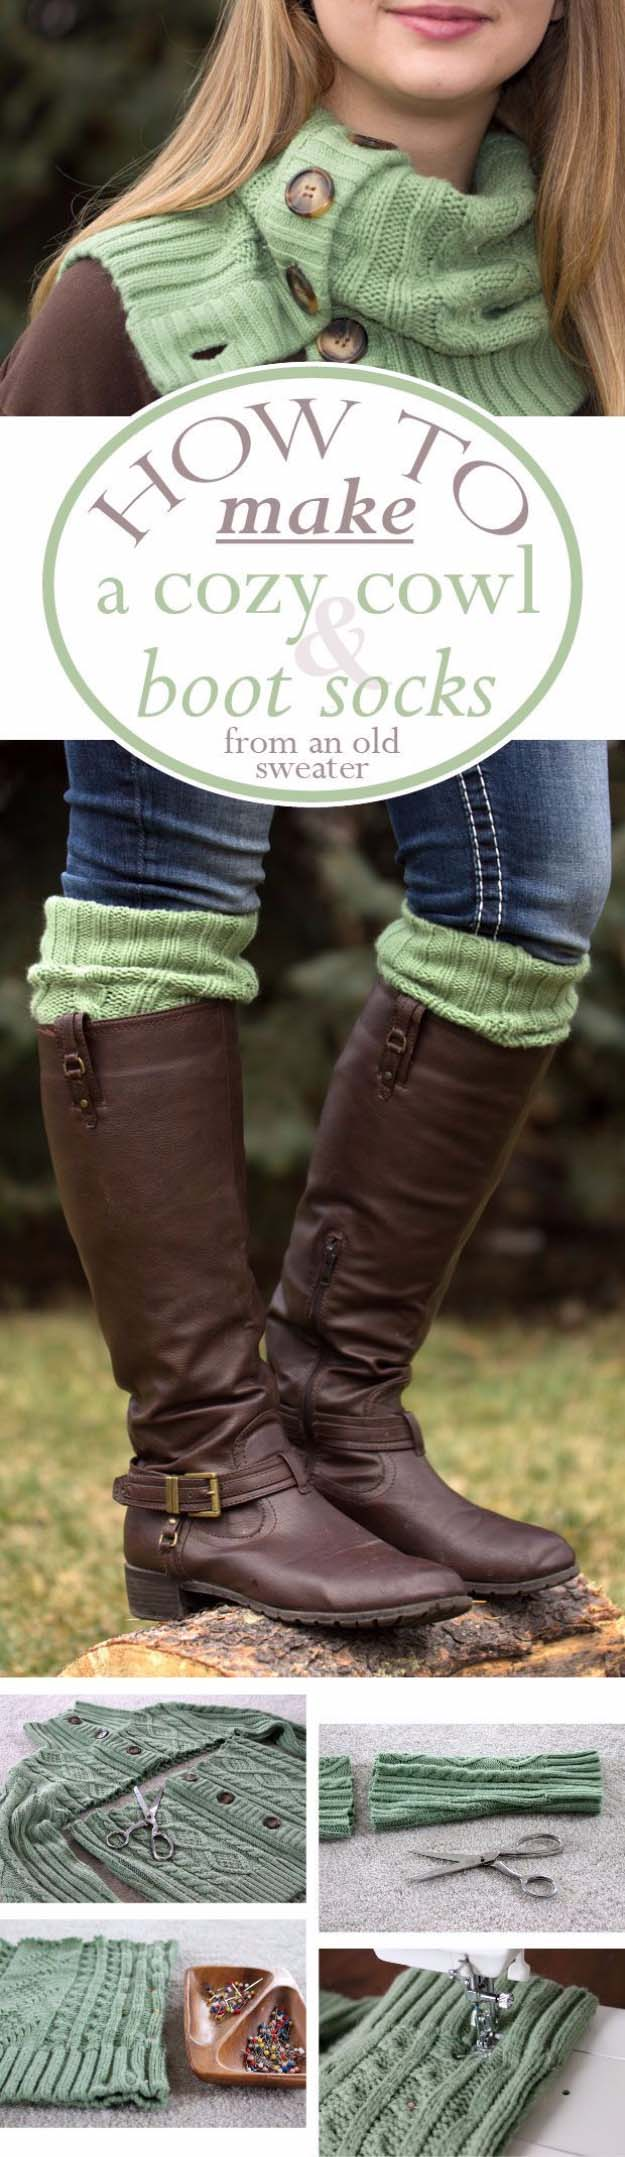 DIY Gifts for Your Girlfriend and Cool Homemade Gift Ideas for Her   Easy Creative DIY Projects and Tutorials for Christmas, Birthday and Anniversary Gifts for Mom, Sister, Aunt, Teacher or Friends   Matching Homemade Cowl and DIY Boot Socks - Fun Fashion for Her #diygifts #diyideas